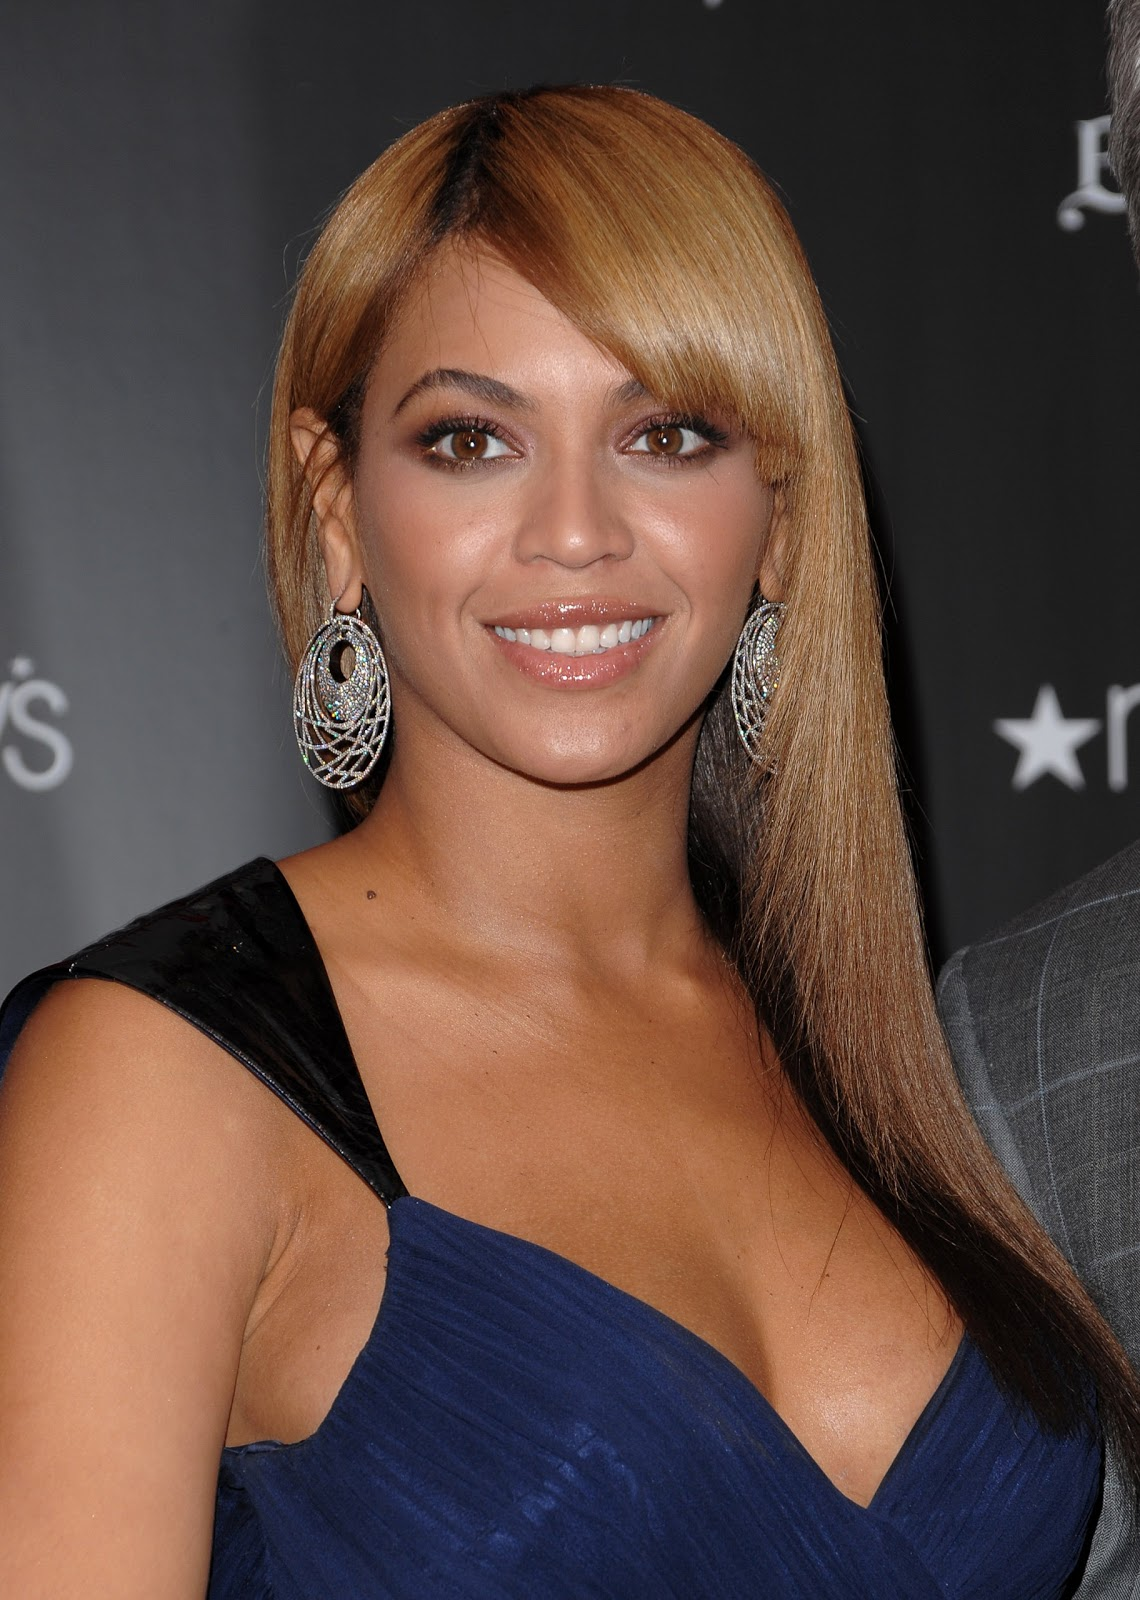 http://1.bp.blogspot.com/-URJ31k2U-8Y/T6ntoqGVGWI/AAAAAAAAAU0/0-RdfWi_K6w/s1600/86712445473_Celebutopia_Beyonce_Knowles_at_Macy9s_in_Herald_Square_to_promote_her_new_fragrance_Heat_in_New_York_City_03_122_170lo.jpg